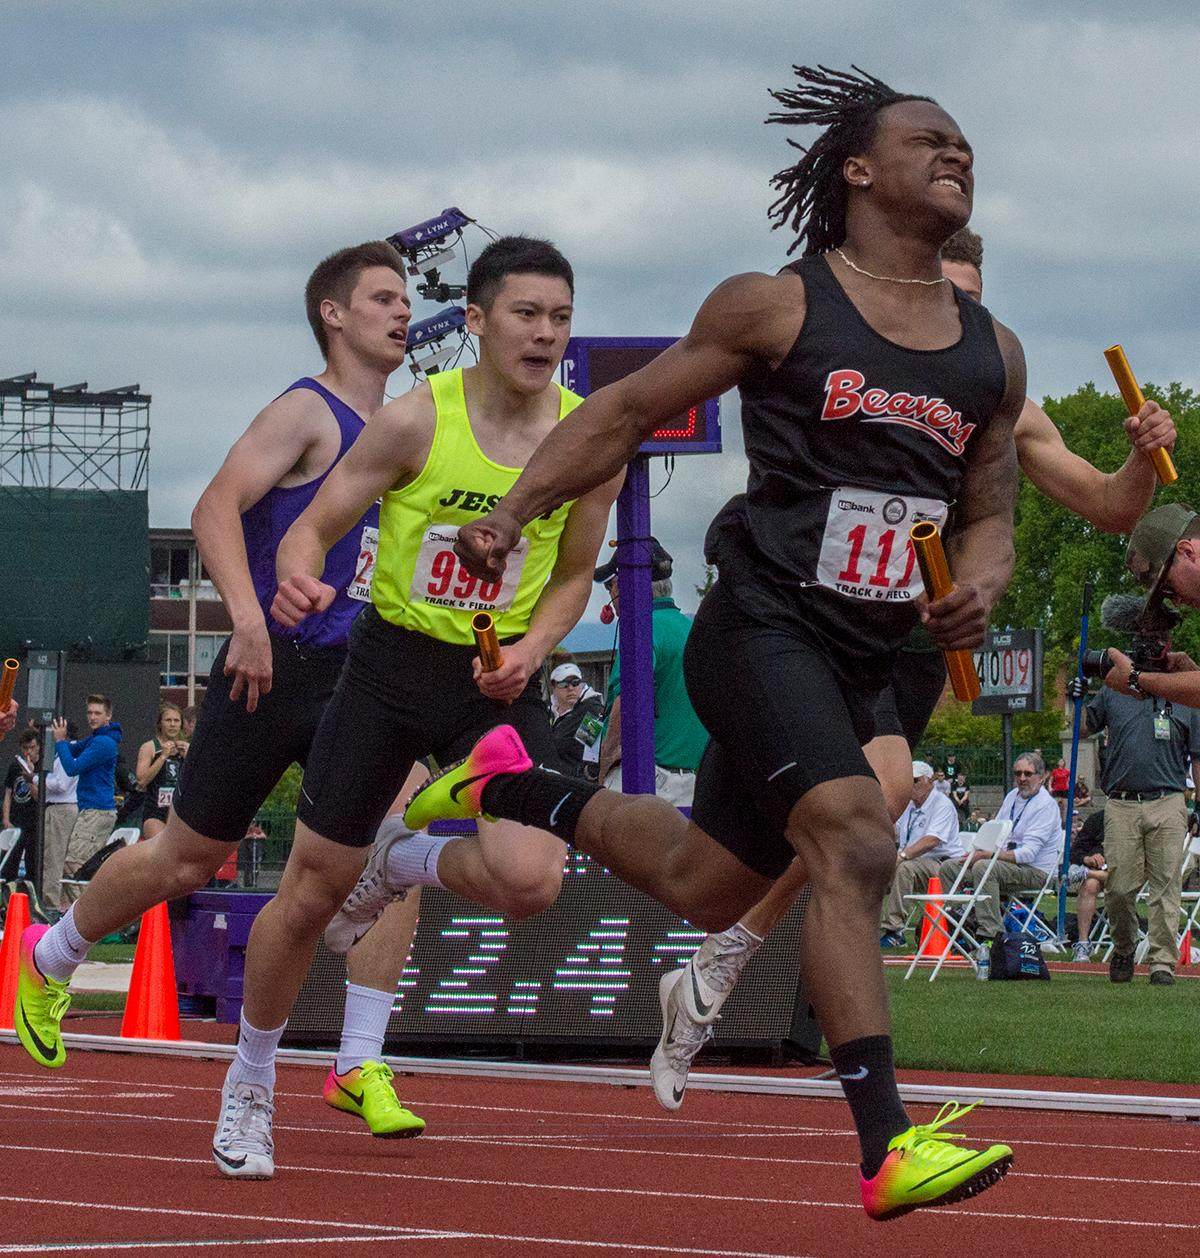 Anthony Albright of Beaverton High School finishes the 6A Boys 4x100 Meter Relay race. Beaverton's relay team (Mataio Talalemotu, Carson Crawford, Lucas Radostitz, and Anthony Albright) takes first with a time of 42.41 at the OSAA Track and Field Championships at Hayward Field. Photo by Emily Gonzalez, Oregon News Lab.